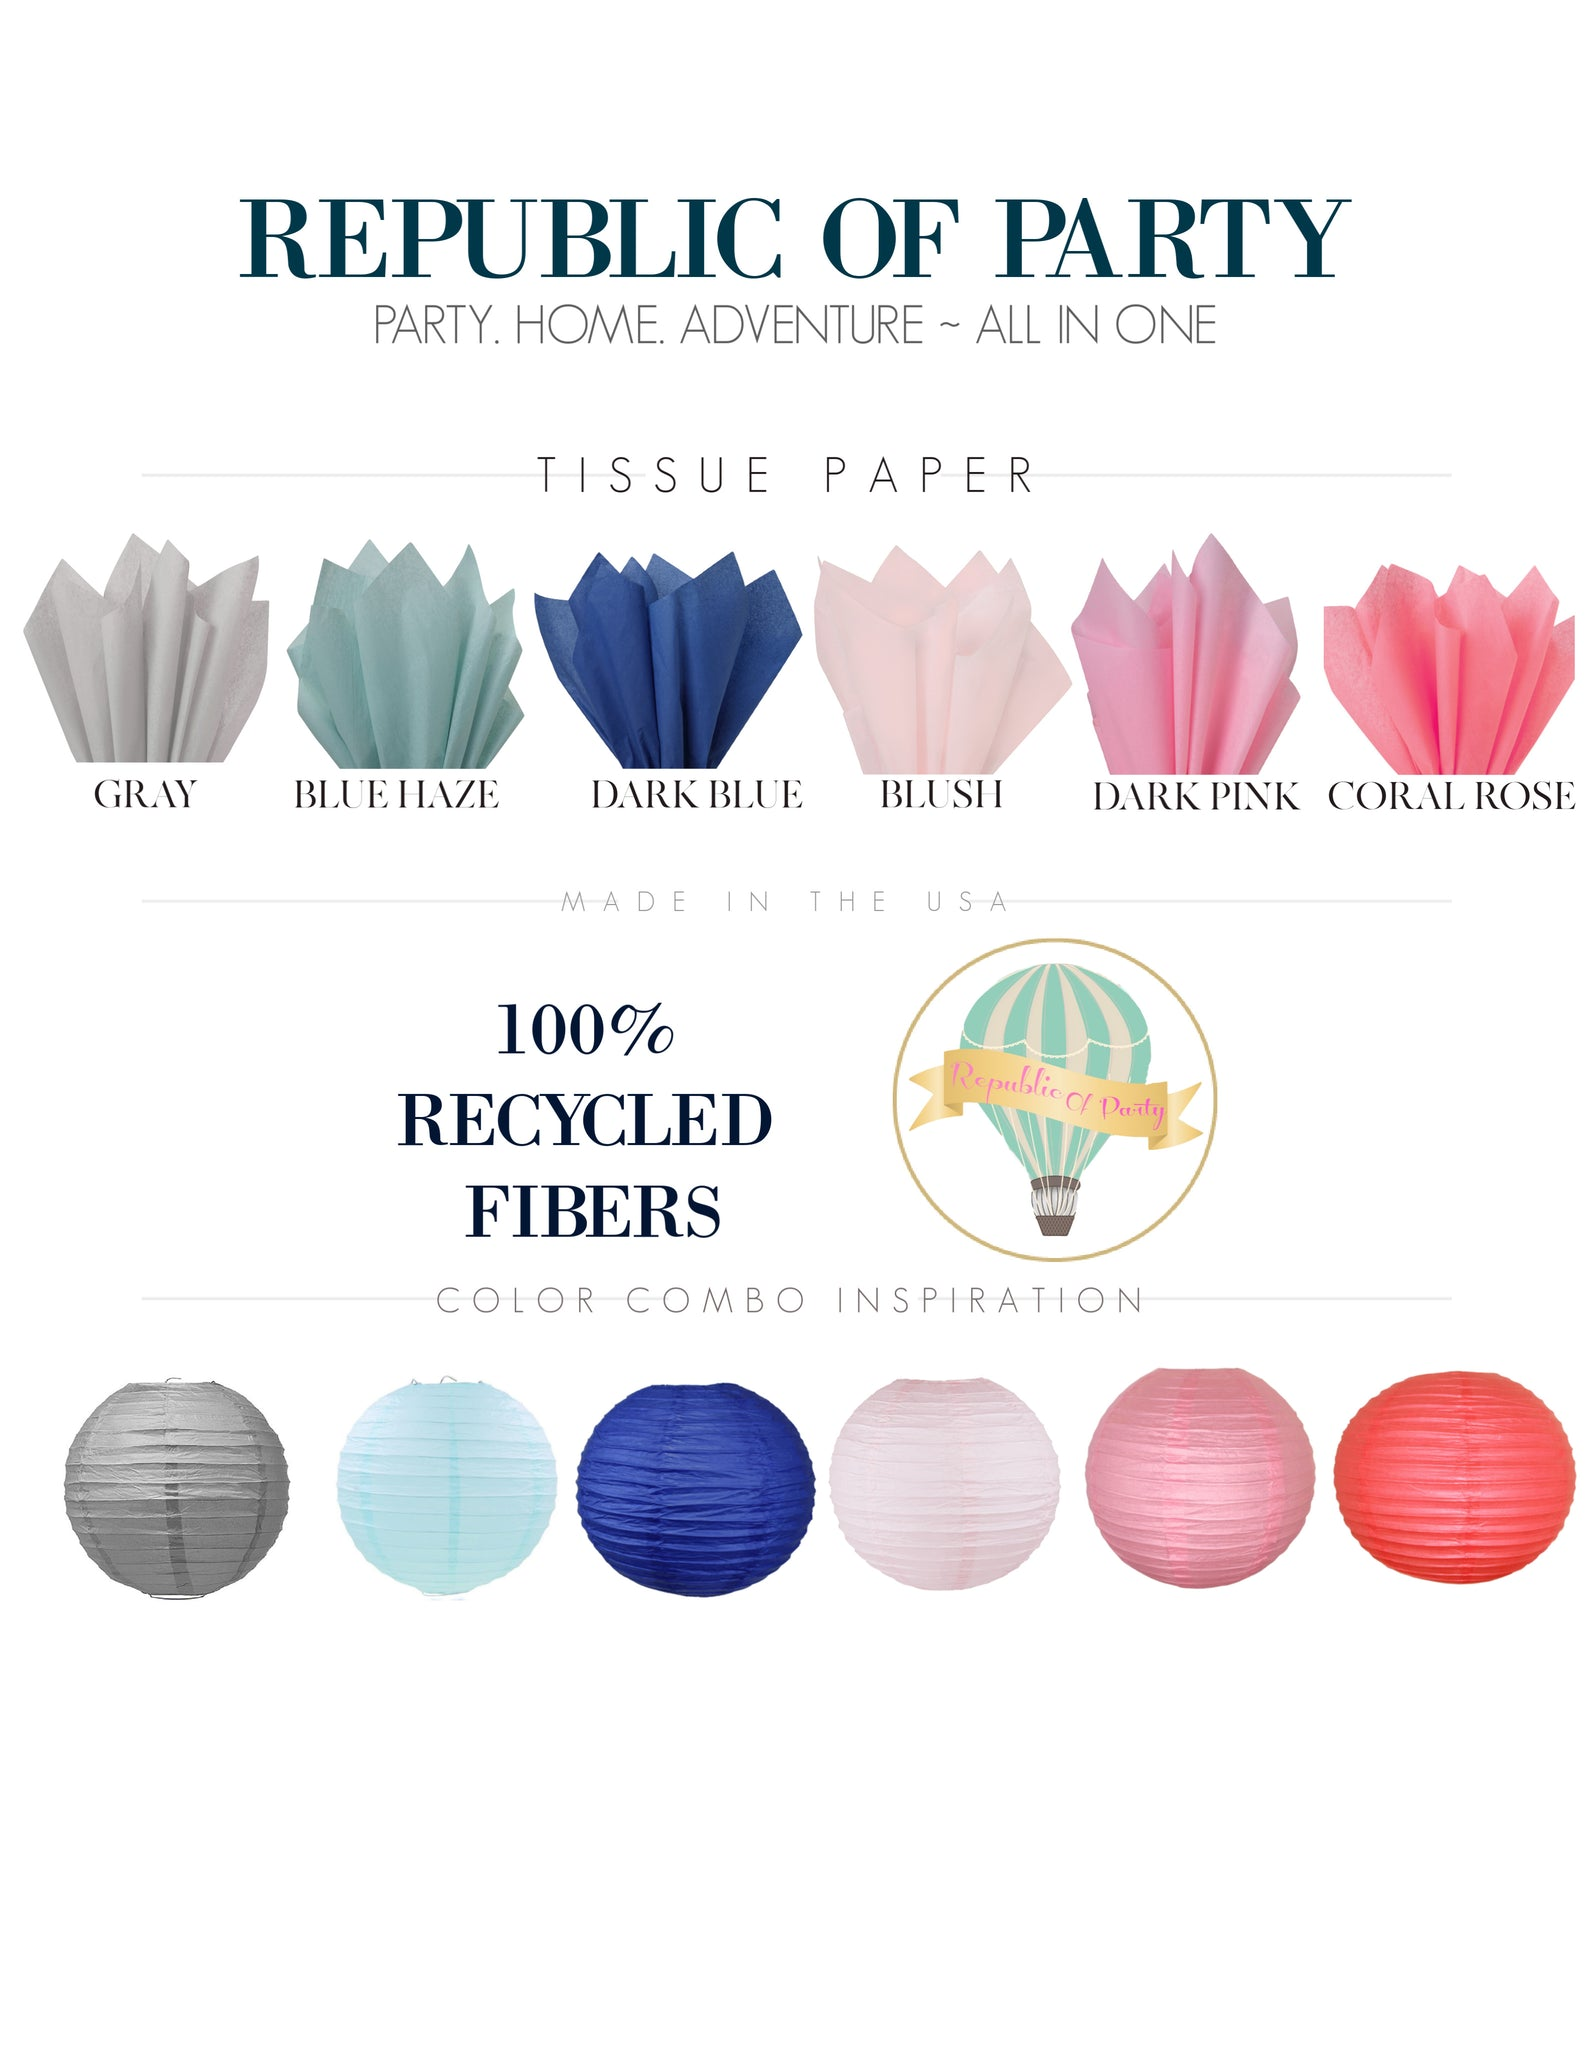 color combo ideas for jellyfish